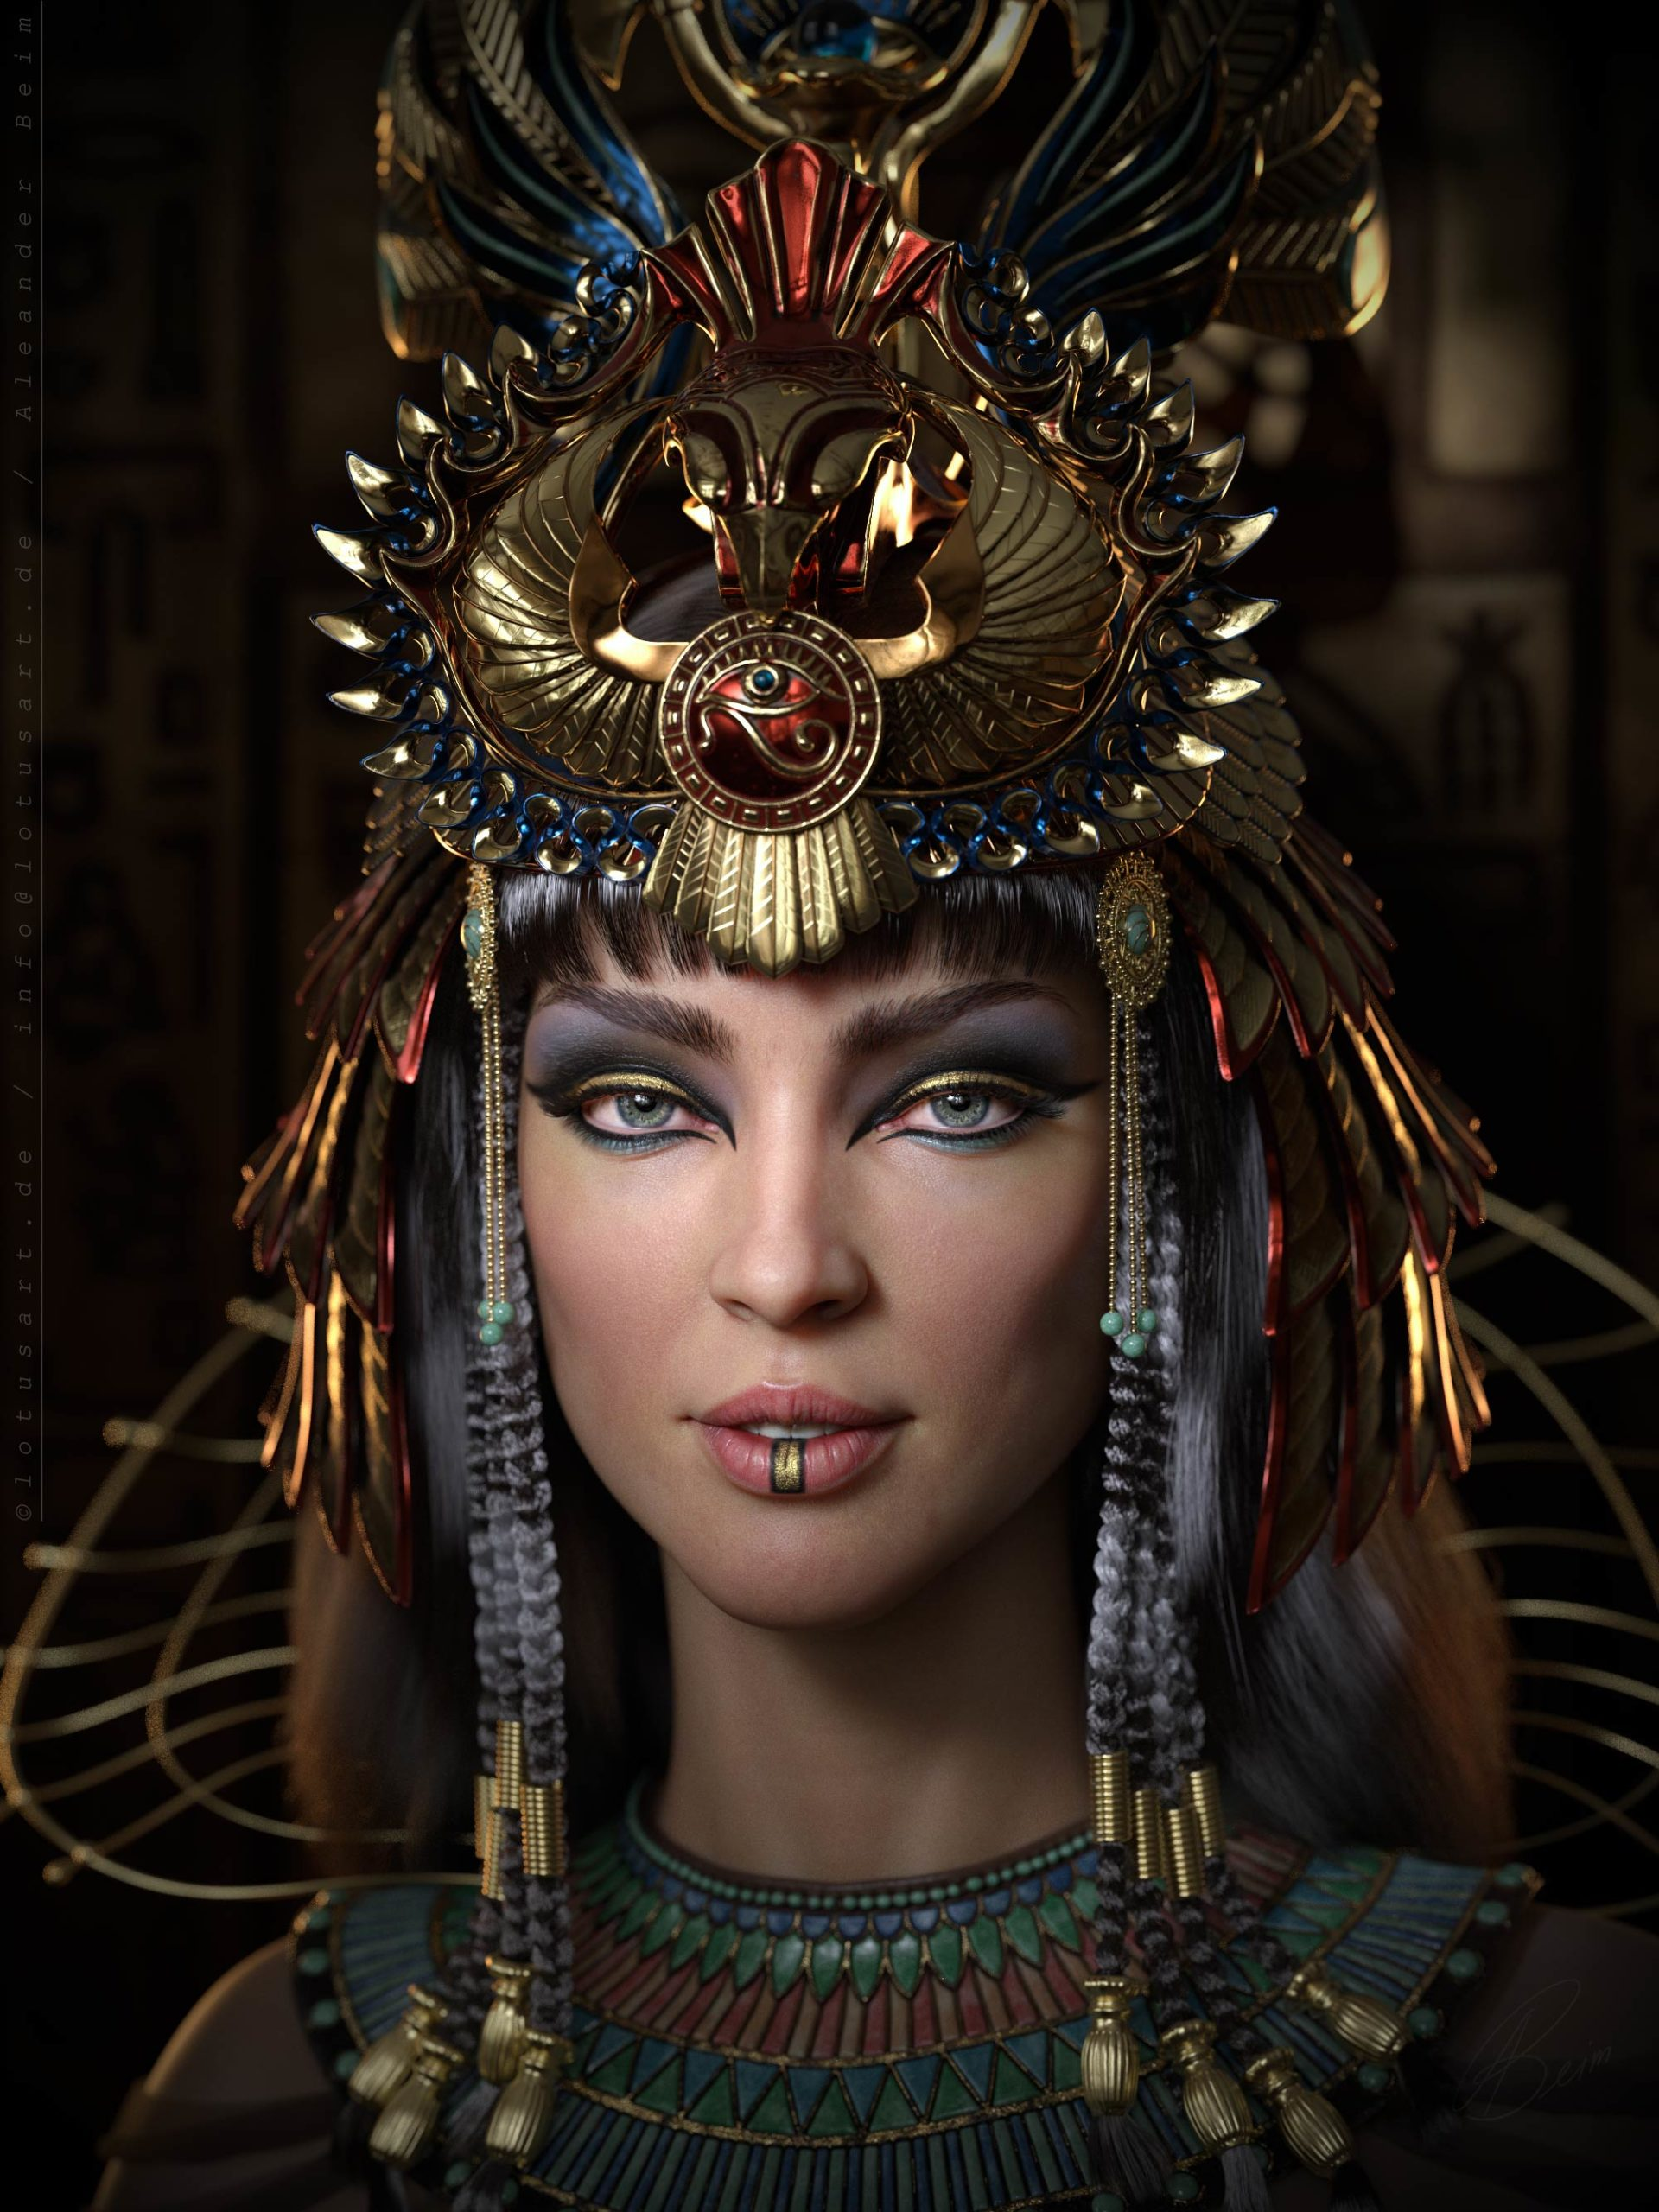 cleopatra_3d_character_historical_figure_pharaoh_egypt-scaled Cleopatra CG Character